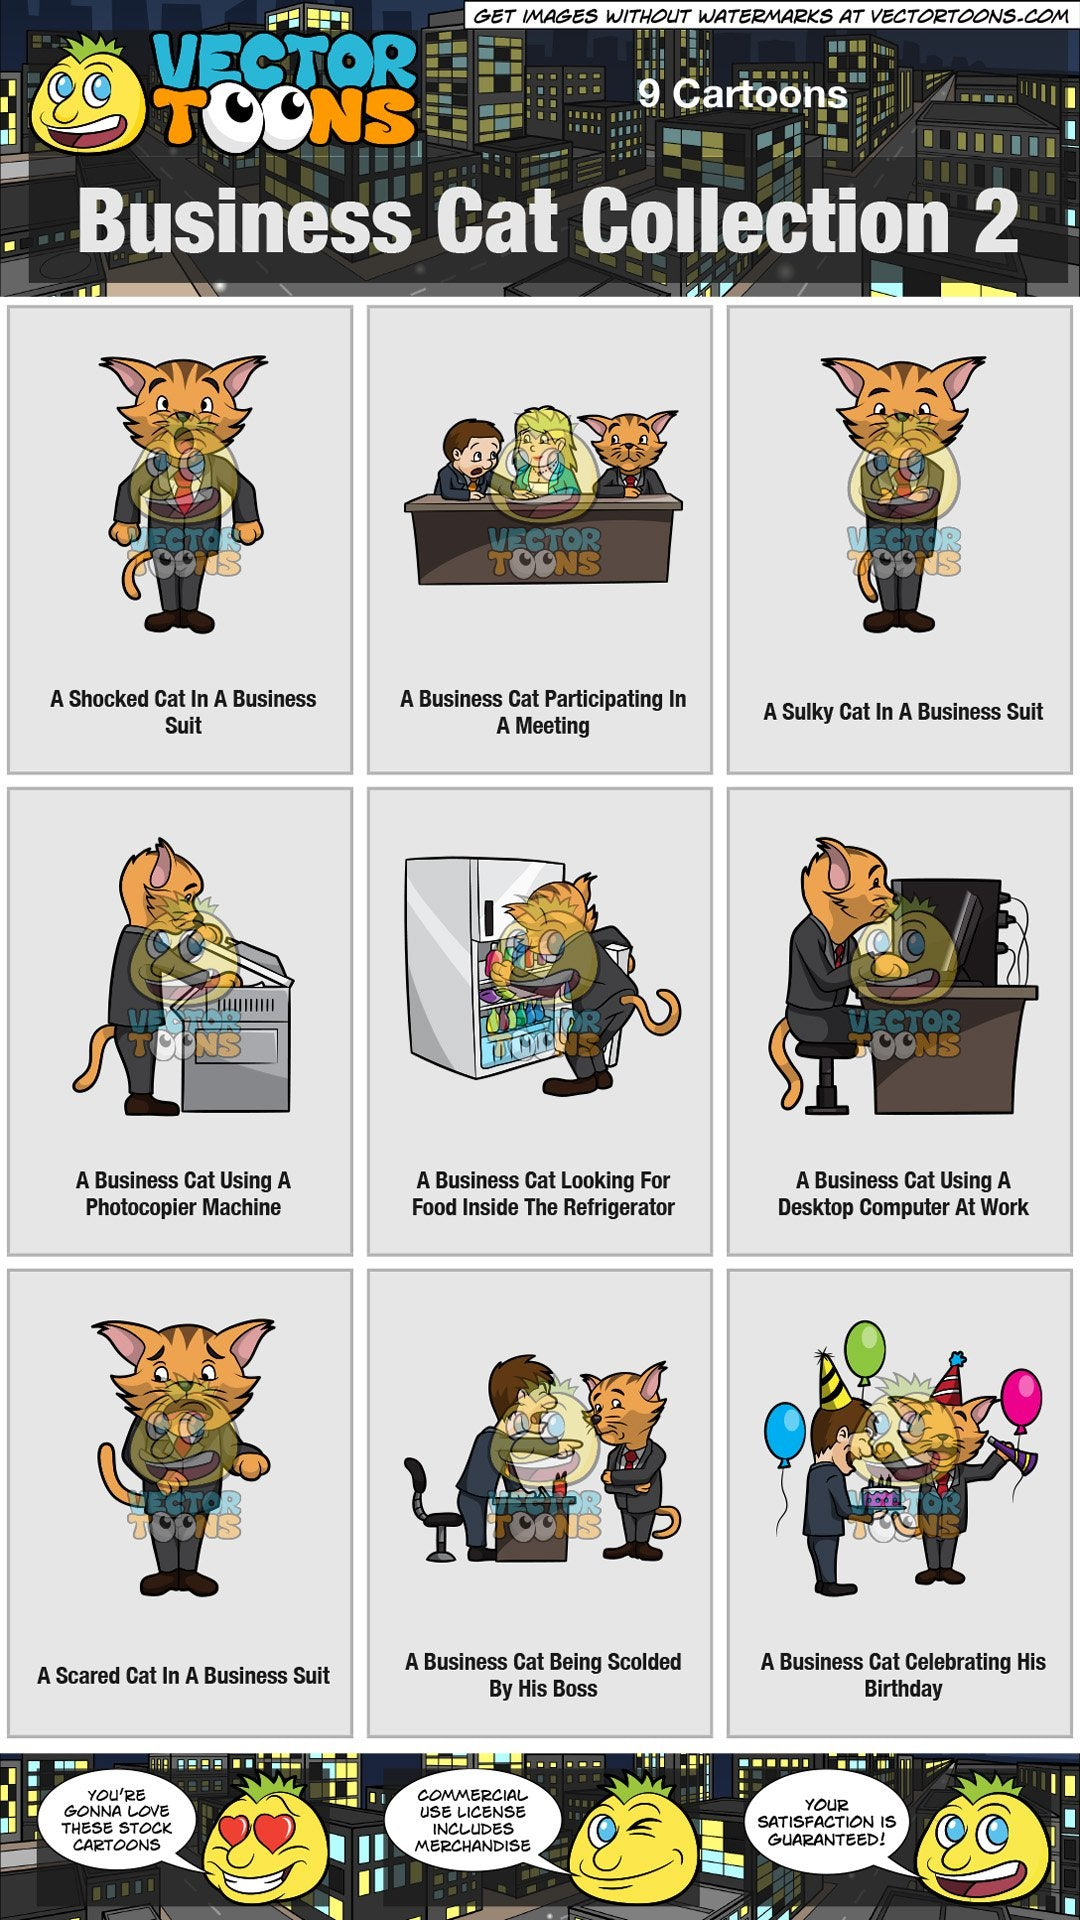 Business Cat Collection 2